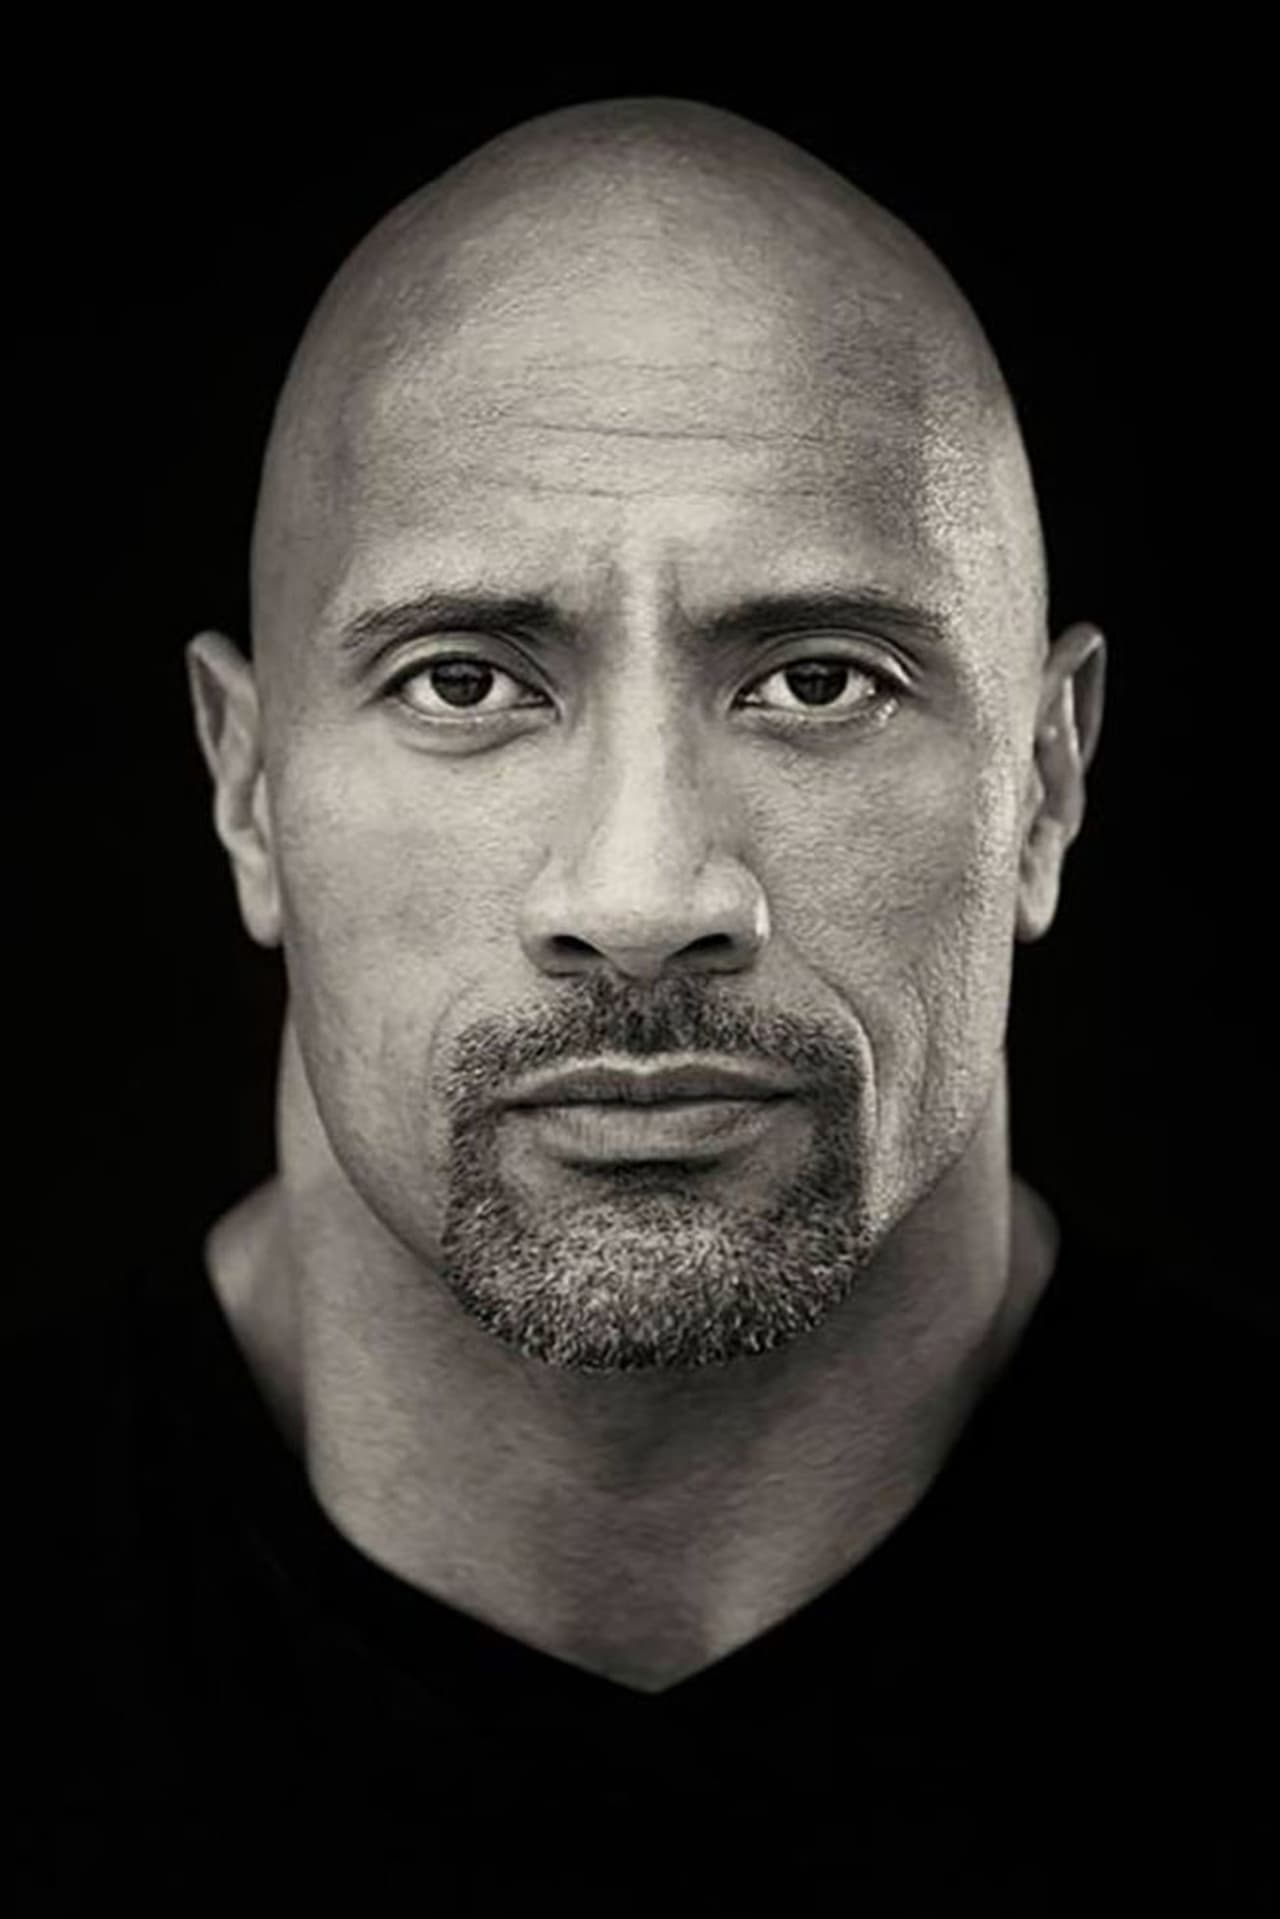 Dwayne Johnson isHimself (as The Rock)